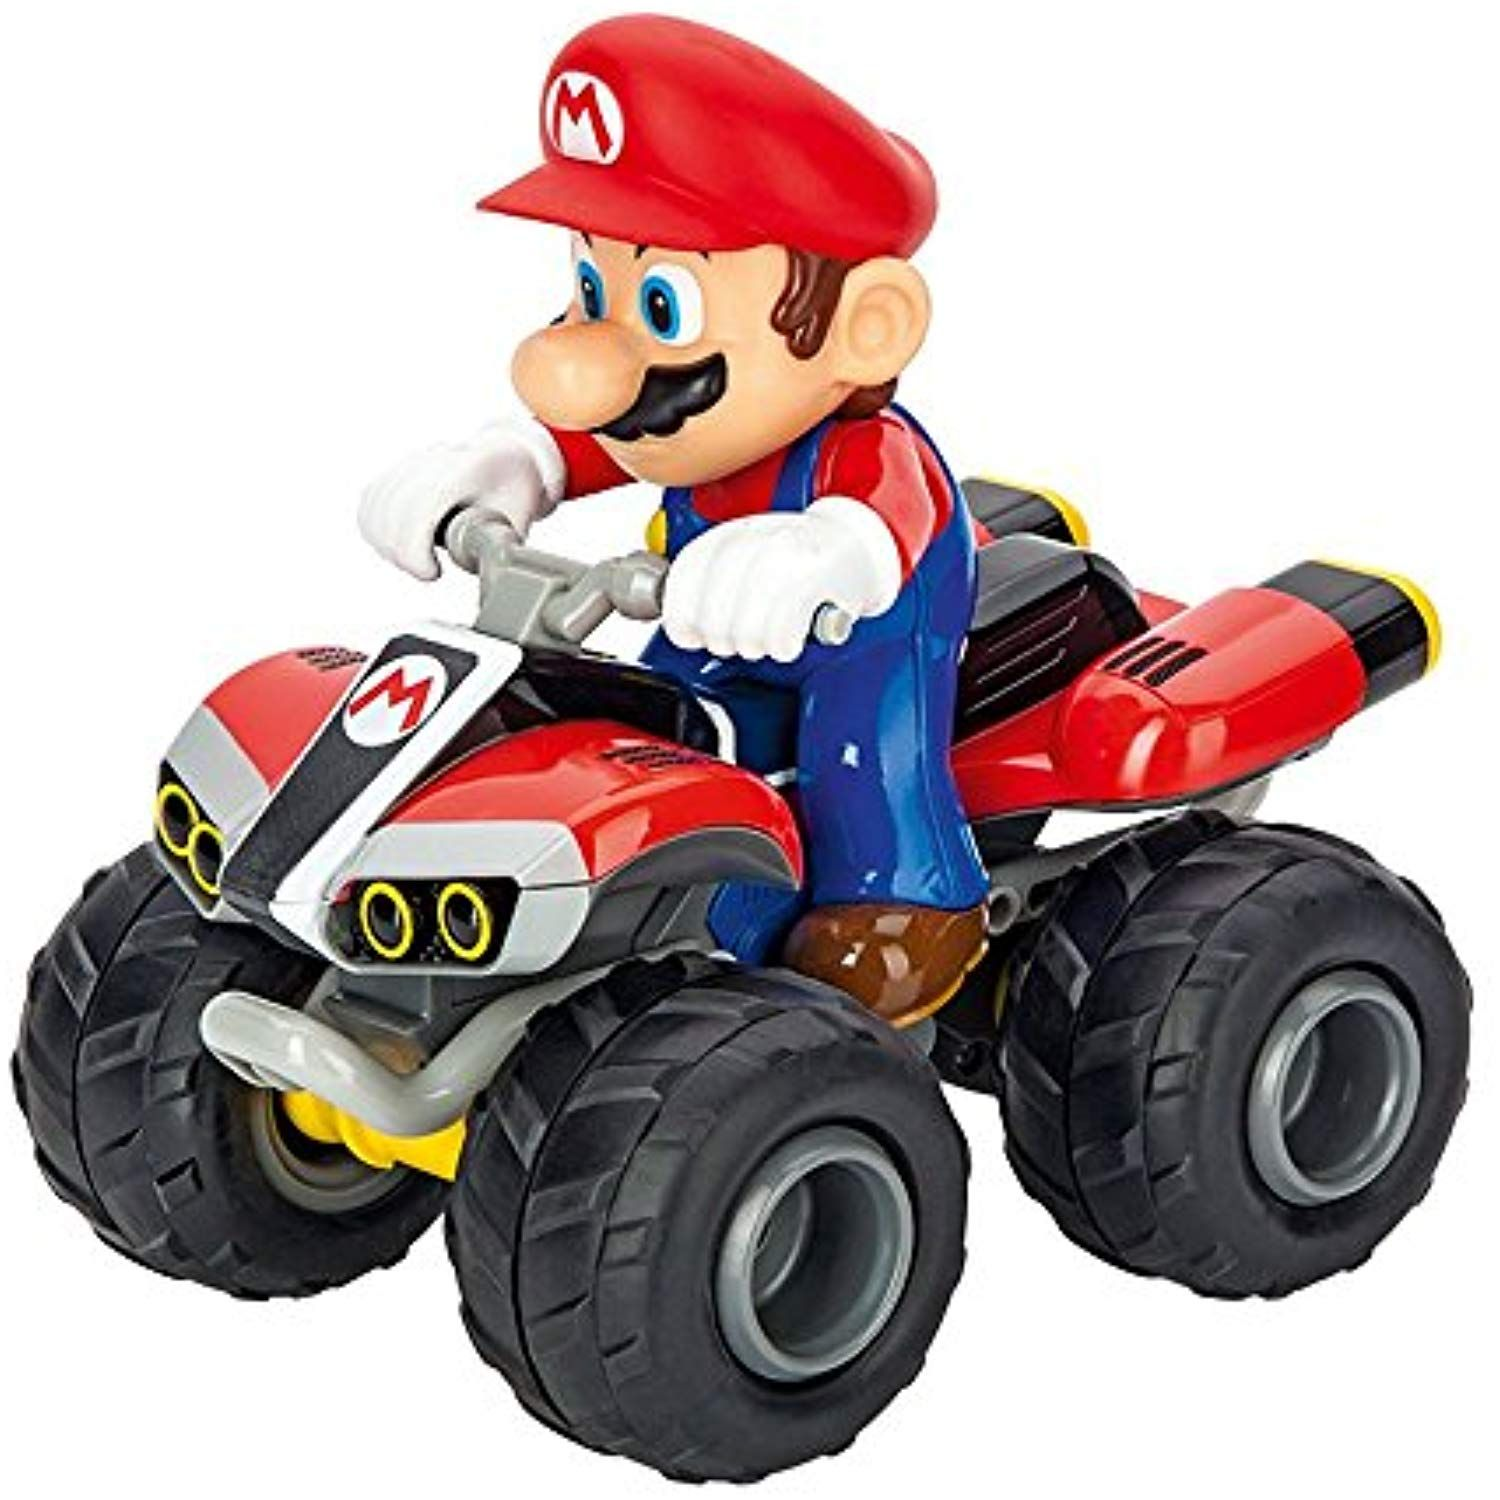 Carrera Rc 200996 1 20 Nintendo Mario Kart 8 Mario 2 4 Ghz Rc Vehicle You Can Find More Details By Visitin Mario Kart Nintendo Mario Kart Super Mario Kart